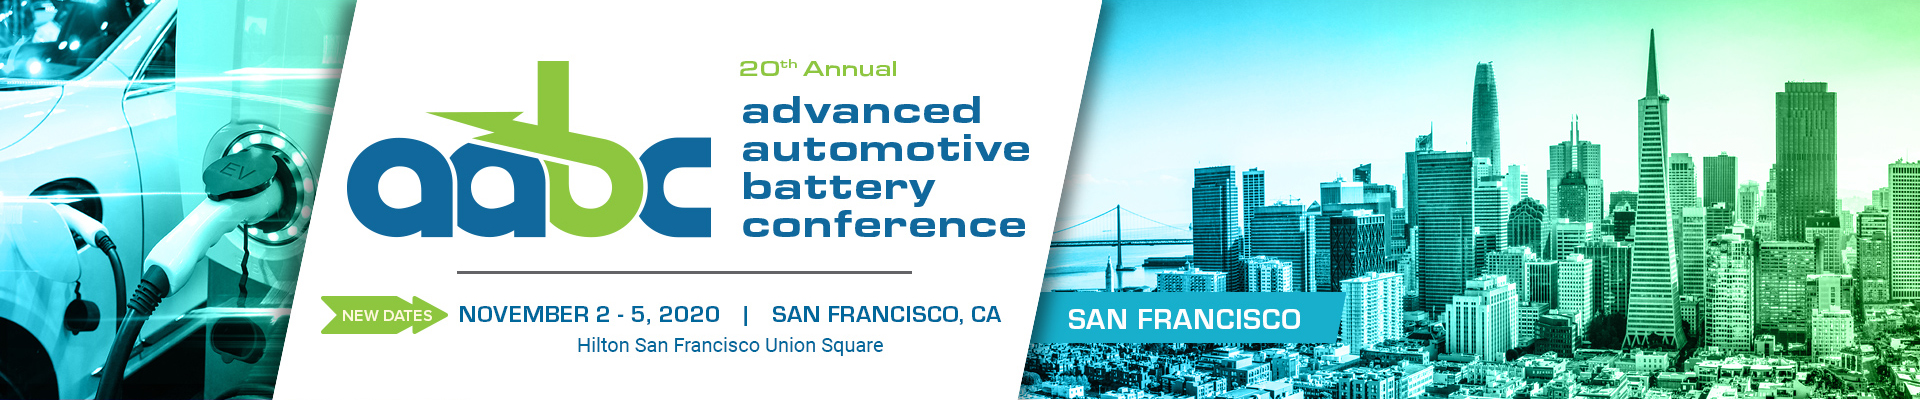 Advanced Automotive Battery Conference - June 8-11, 2020 - San Francisco, CA